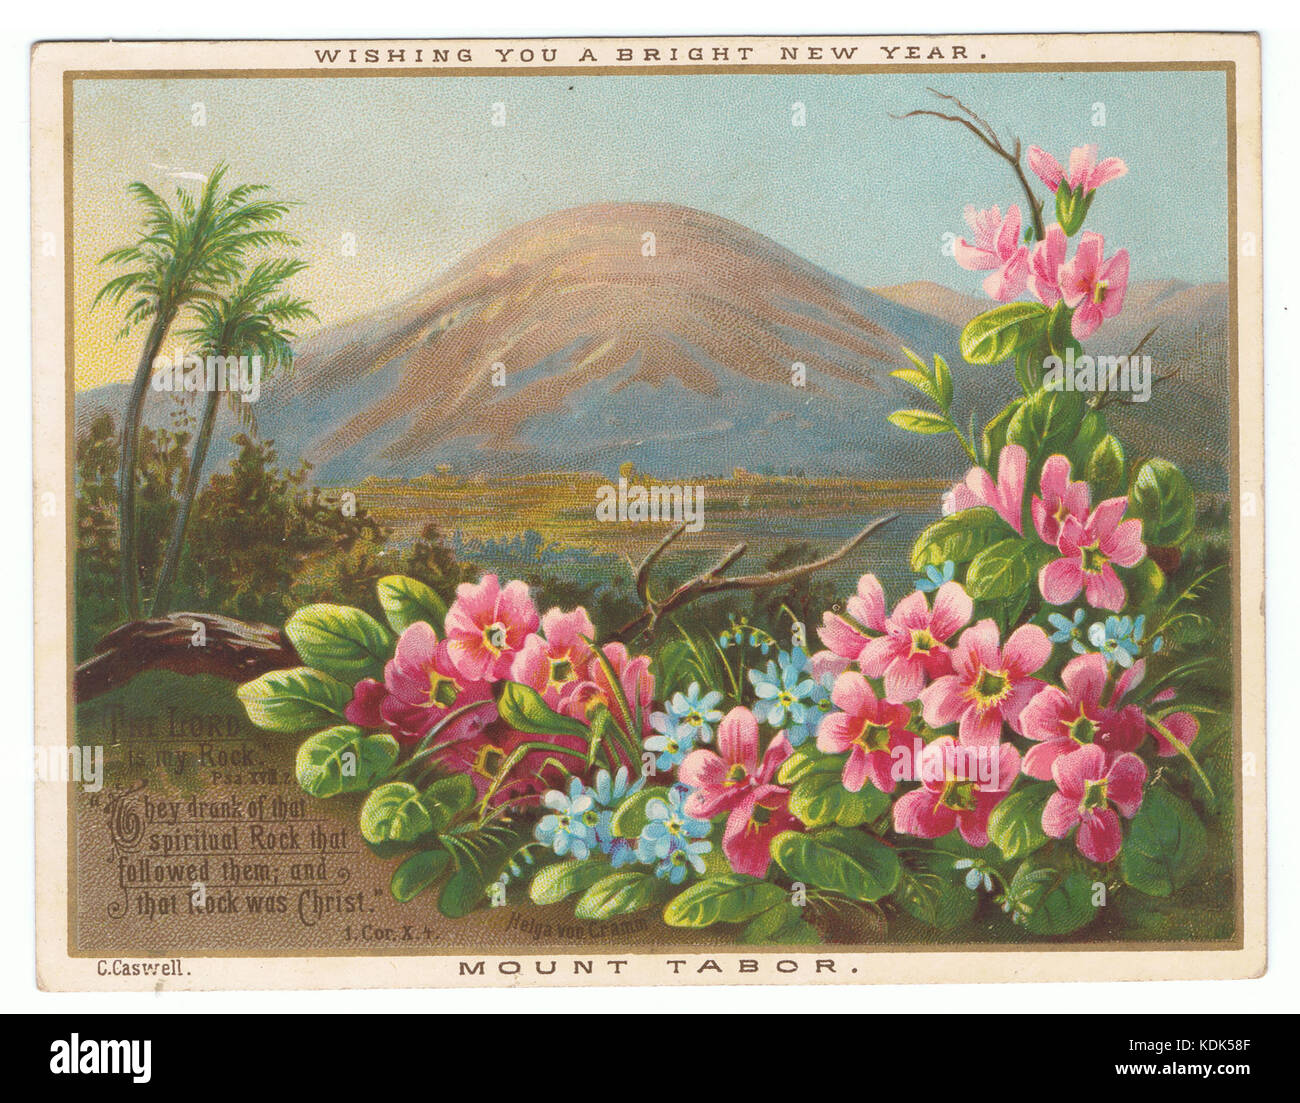 Mount Tabor, by Helga von Cramm. New year chromolithographic card. C. Caswell. (4 x 5.125 inches) - Stock Image